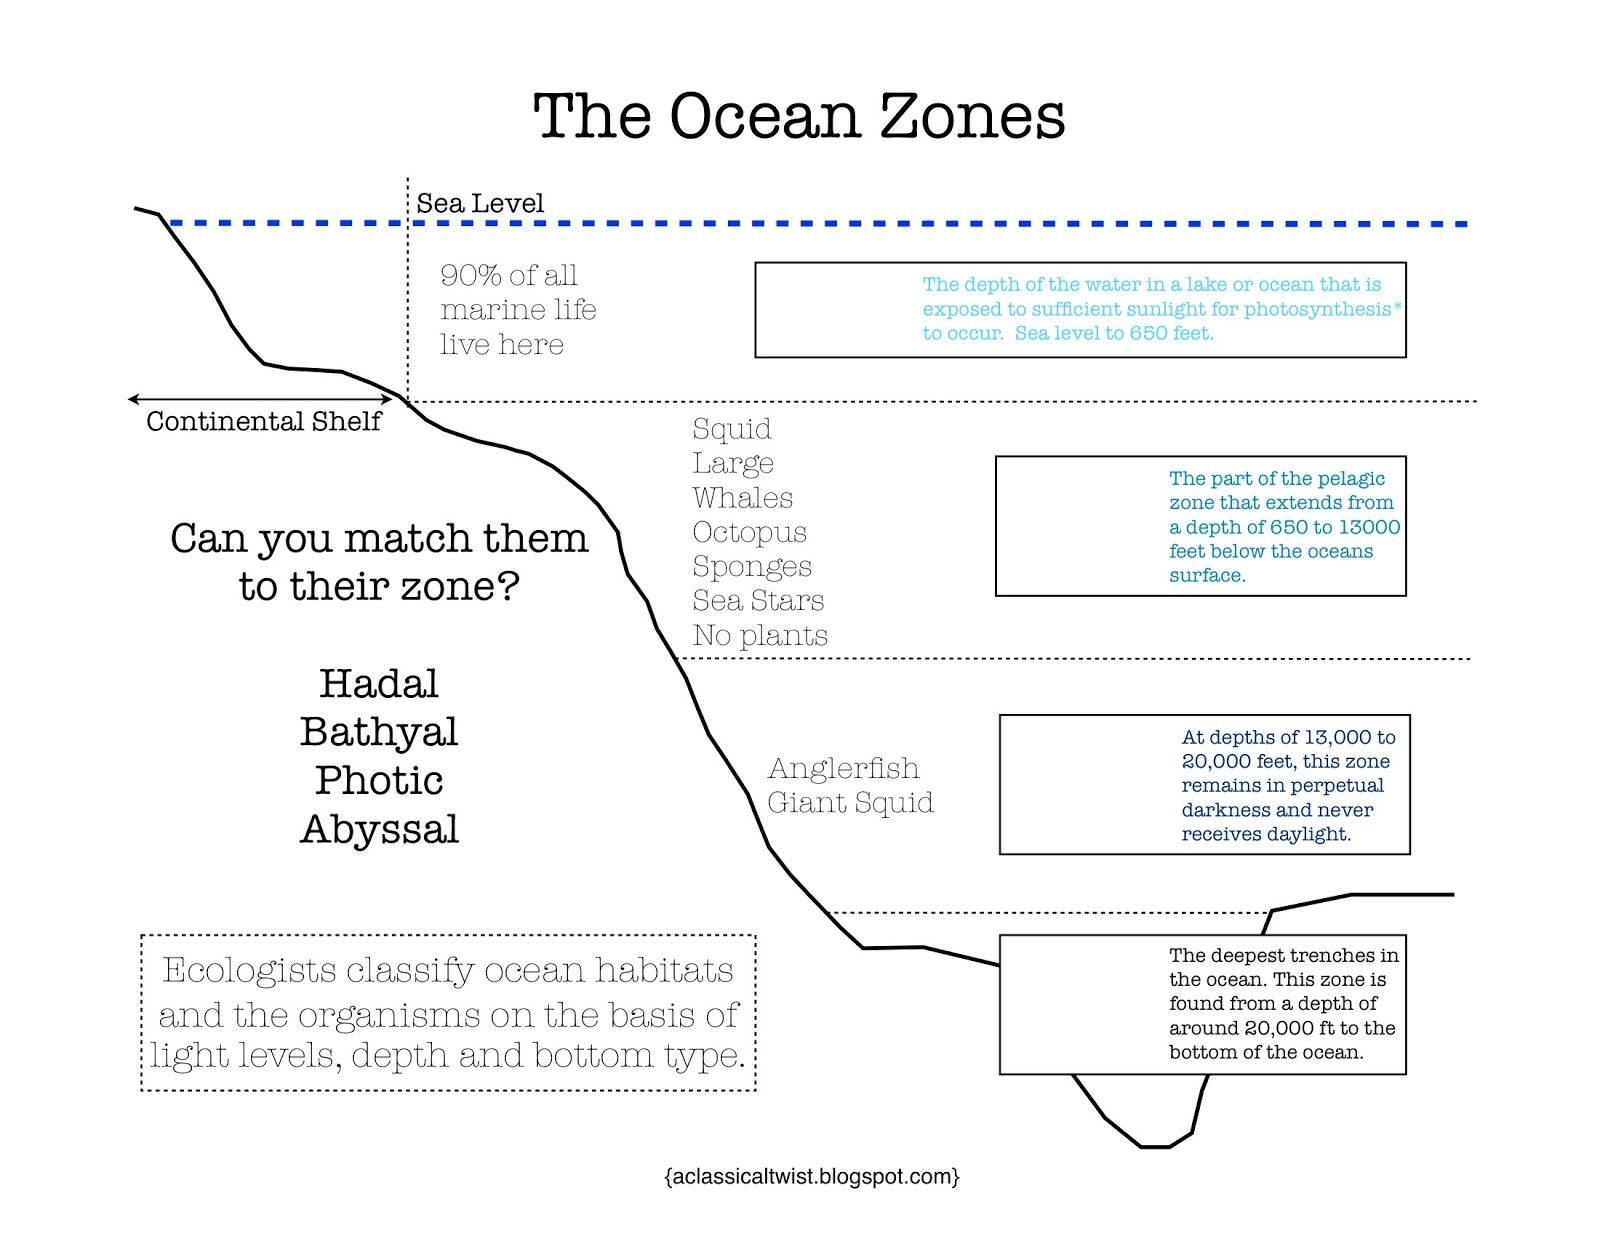 medium resolution of here s a nice printable on the ocean zones answer key can be found at